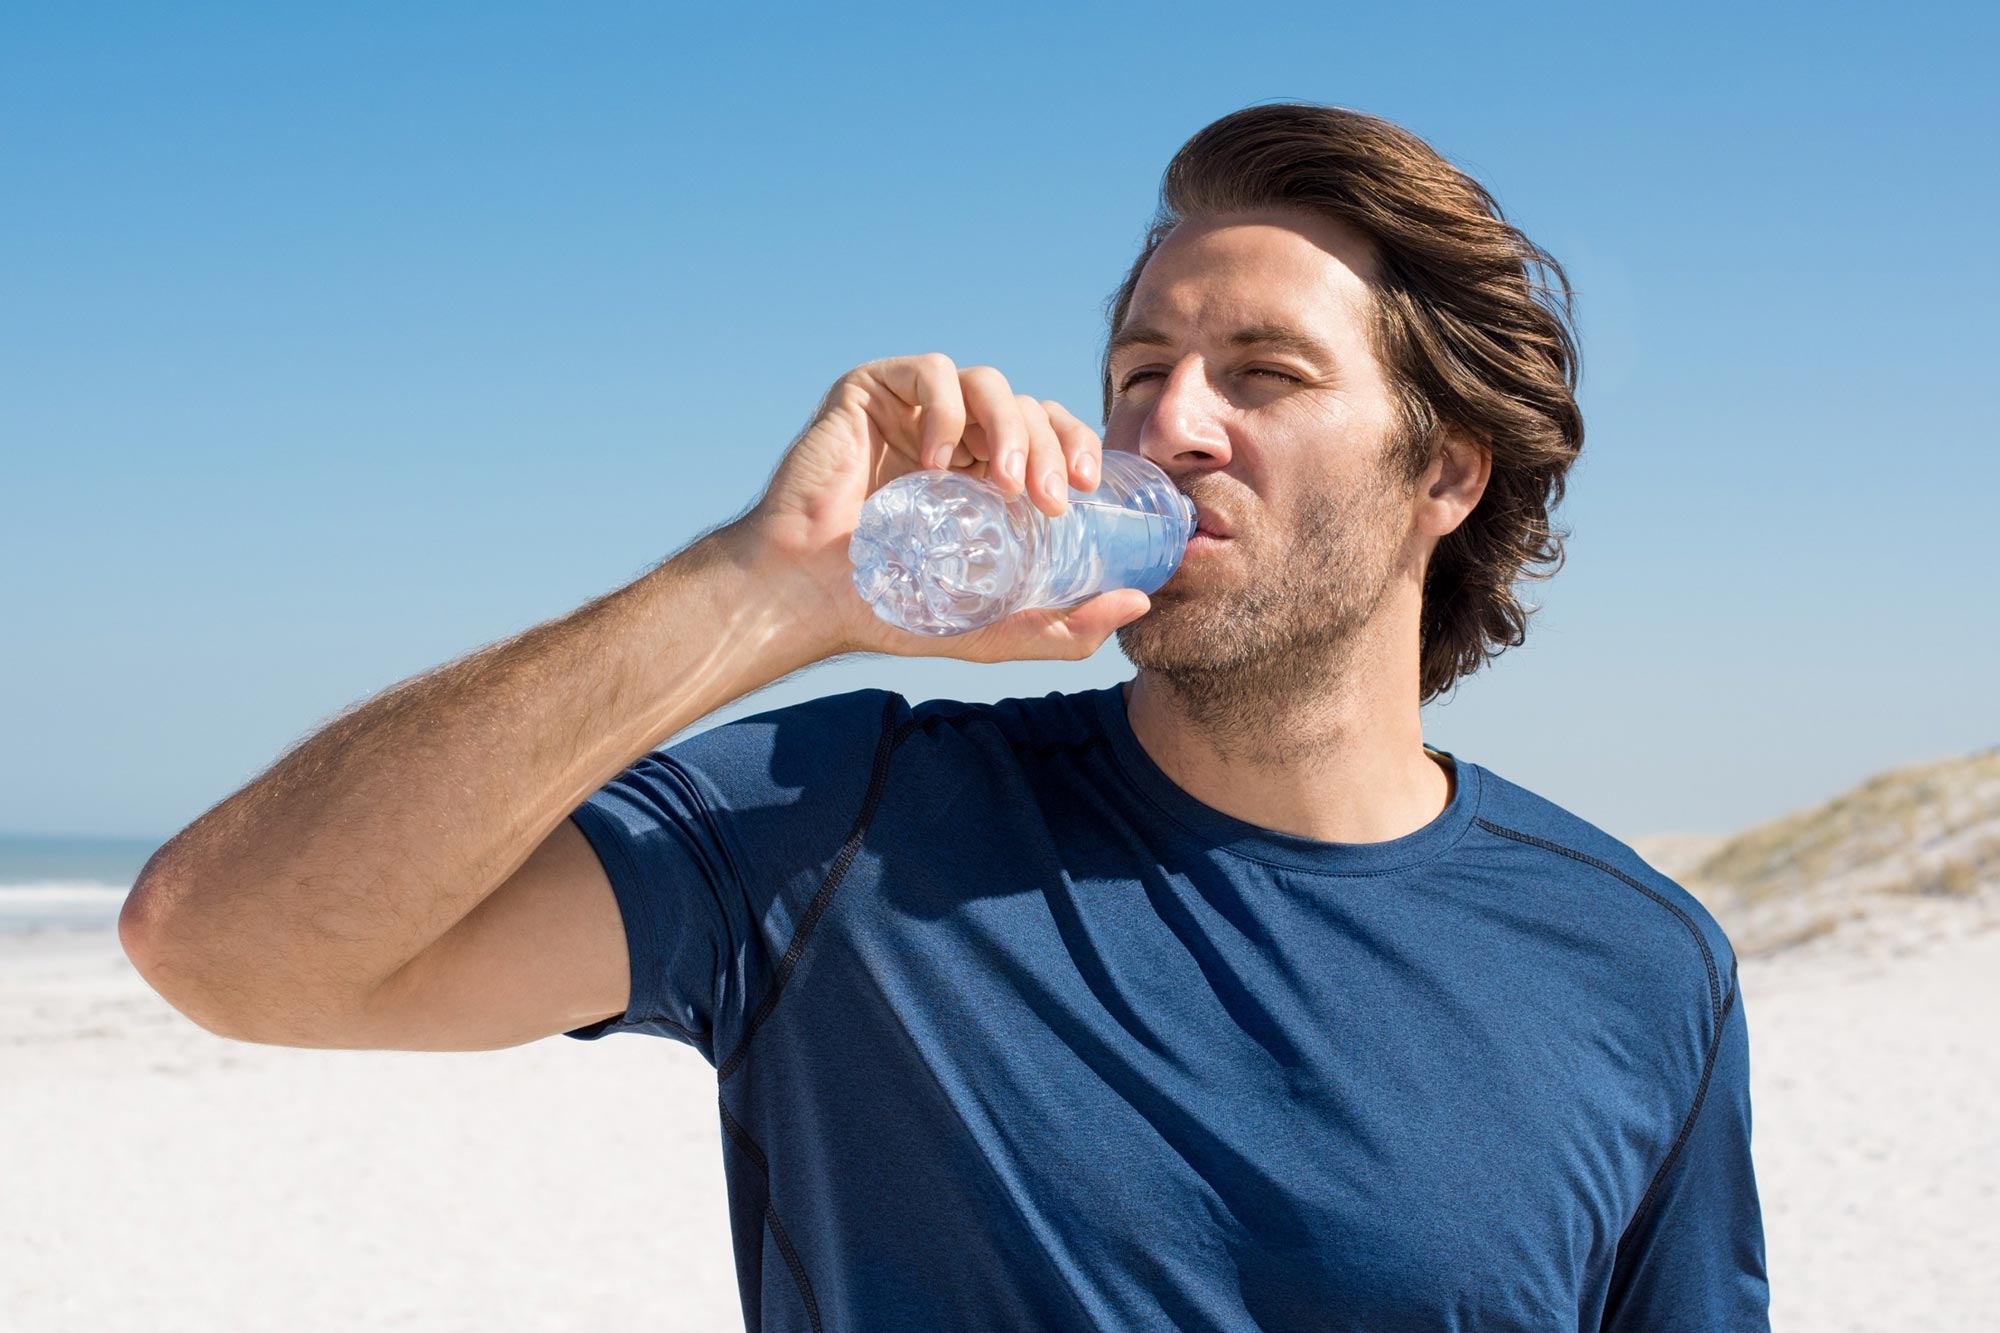 Exercise Scientist Explains: Do You Really Need to Drink 8 Glasses of Water a Day?